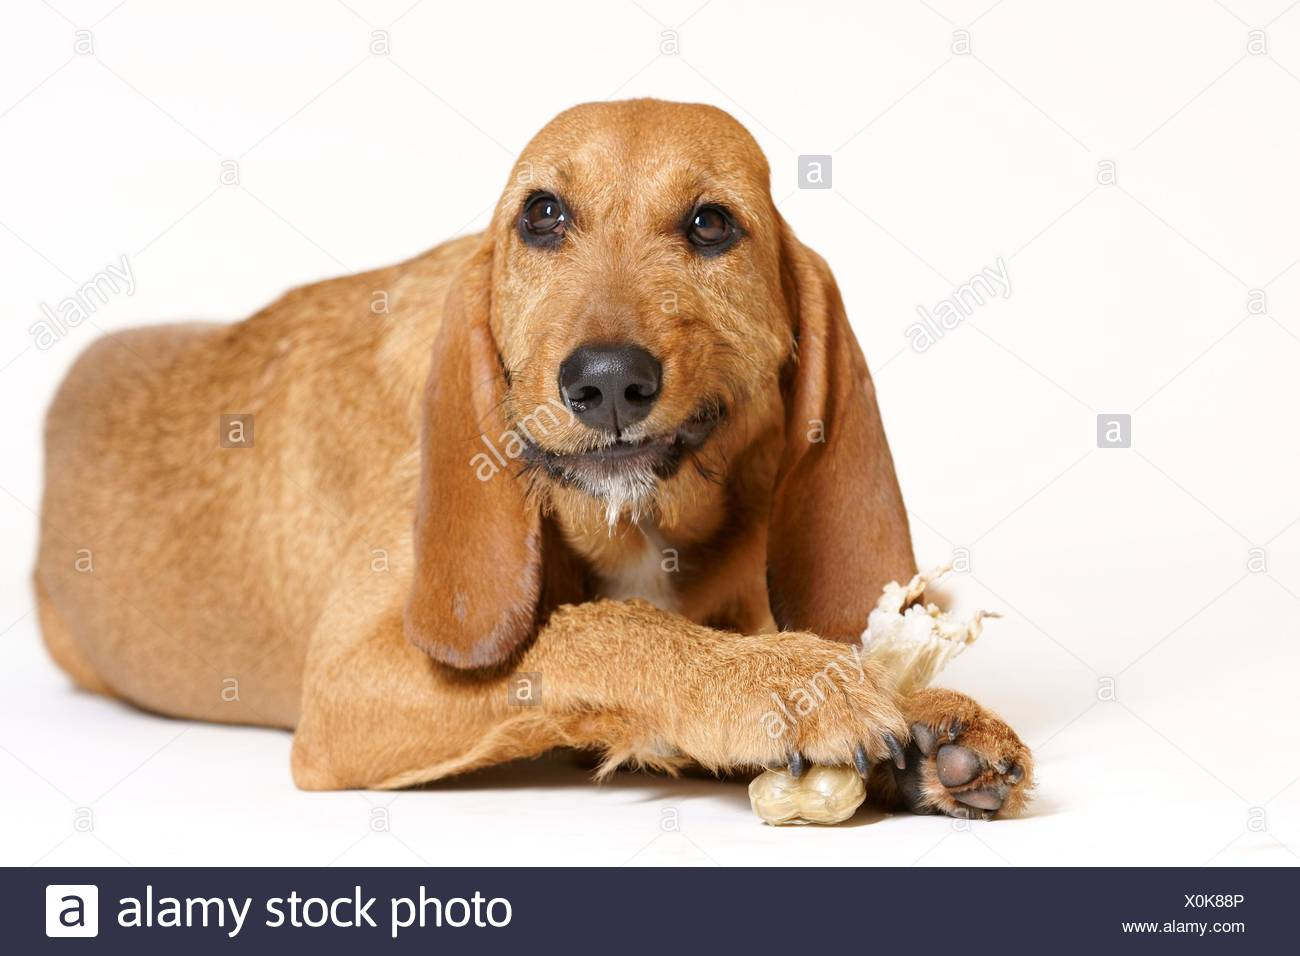 eating dog - Stock Image